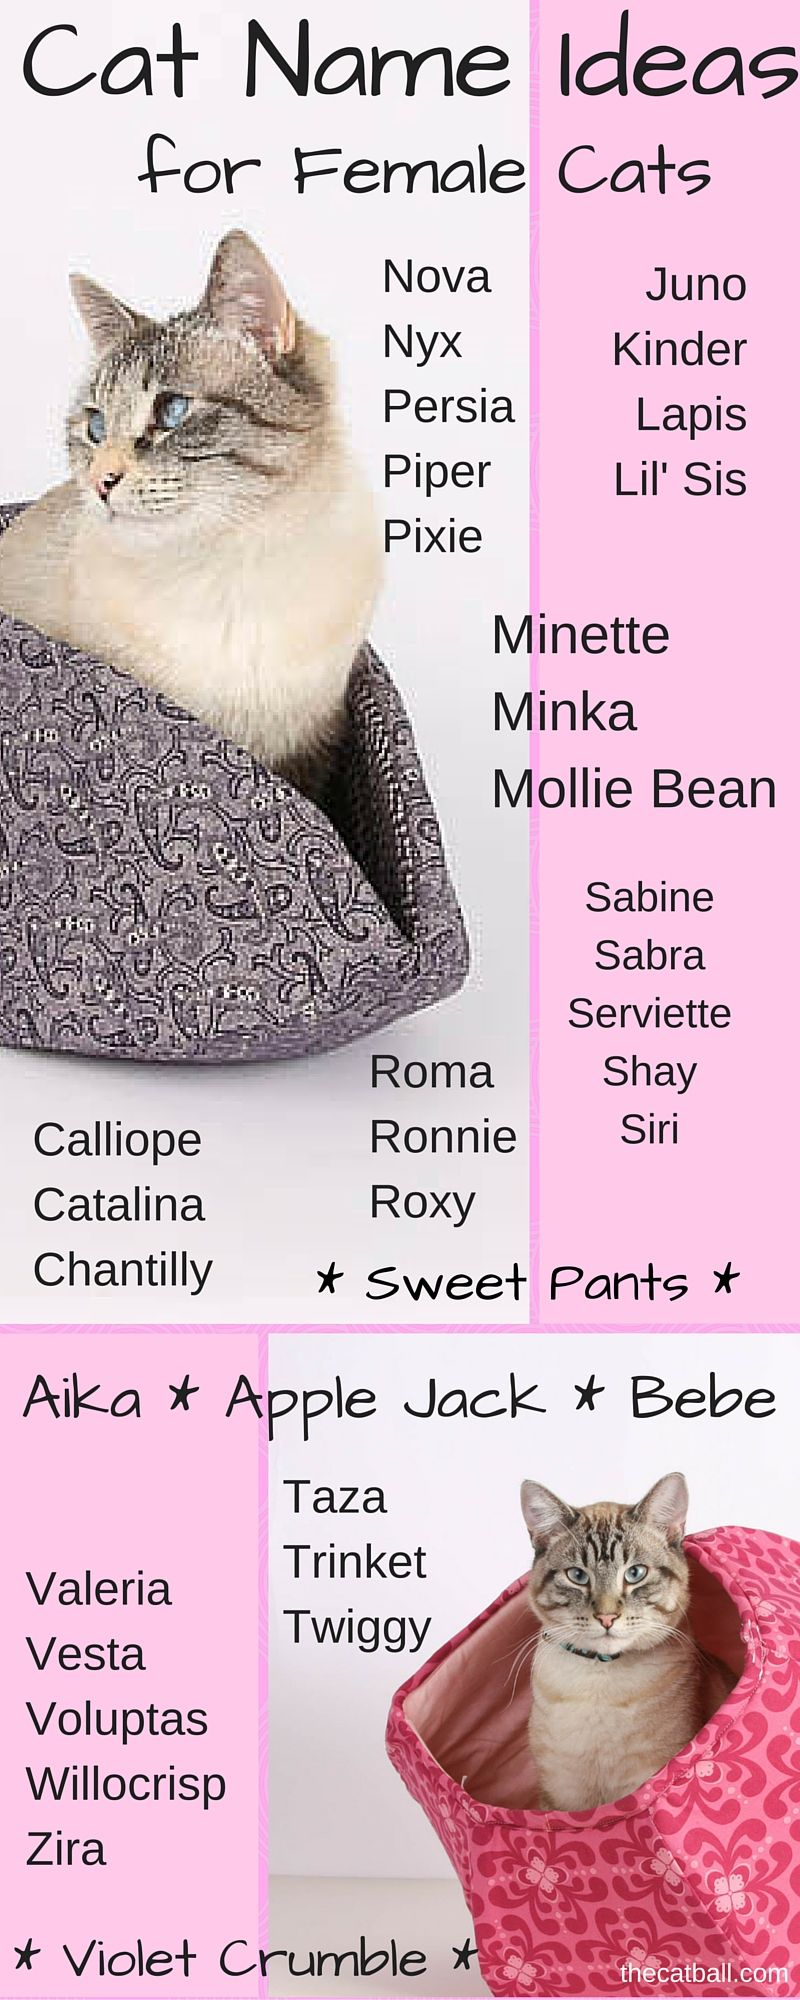 Cat Name Ideas for Female Cats Cat names, Kitten names